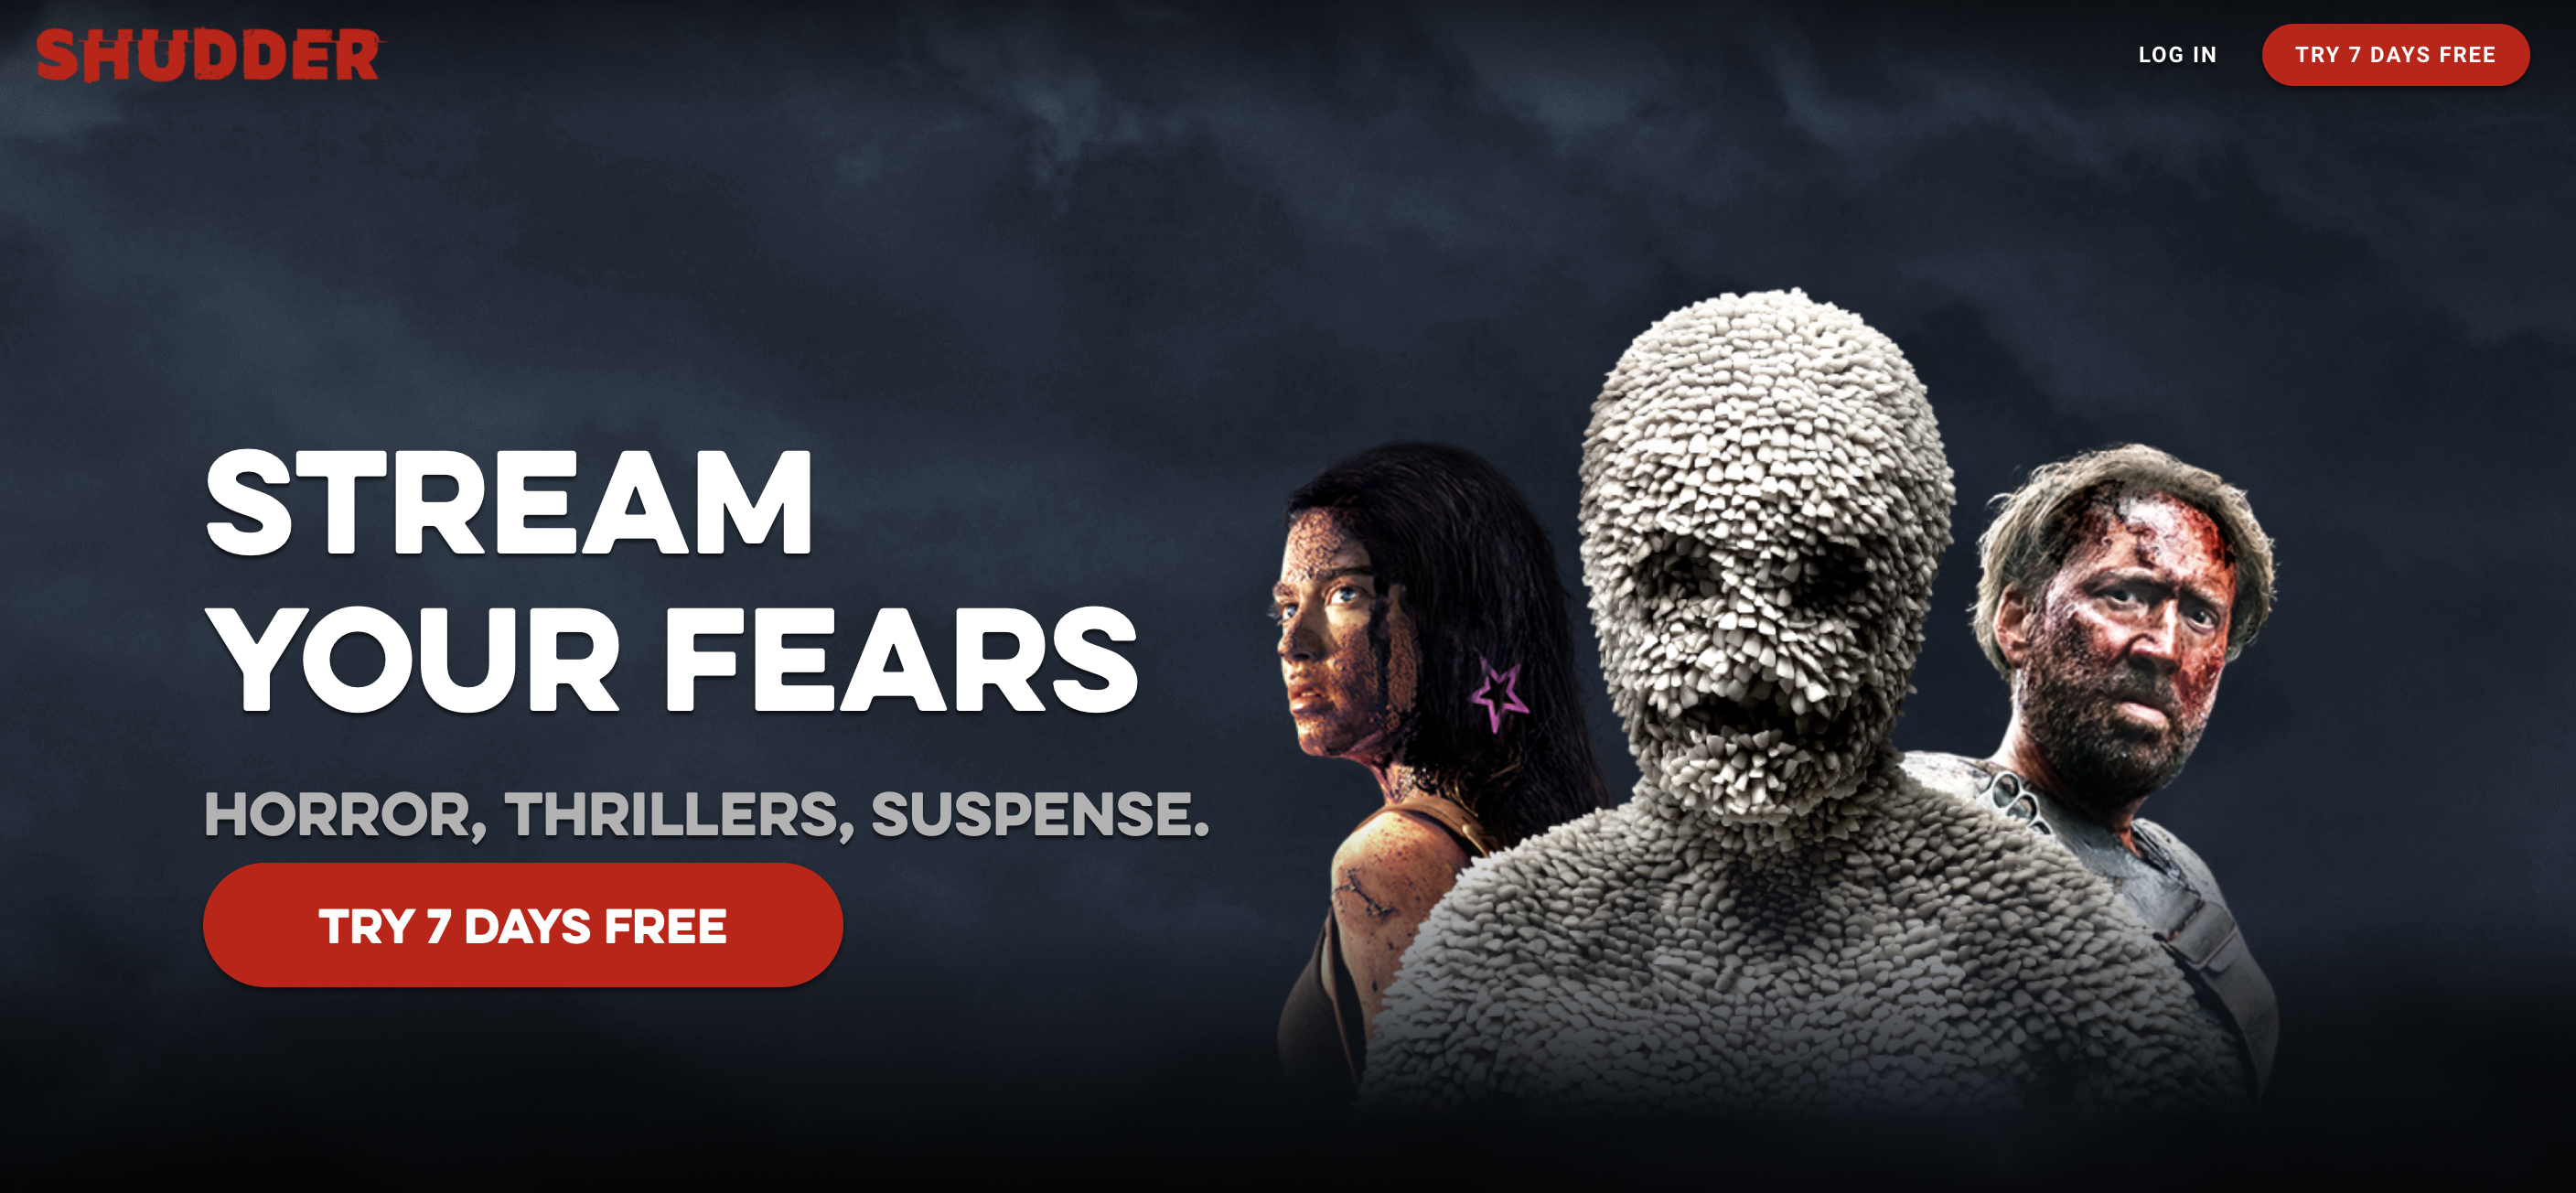 shudder movie streaming platform for horror genre